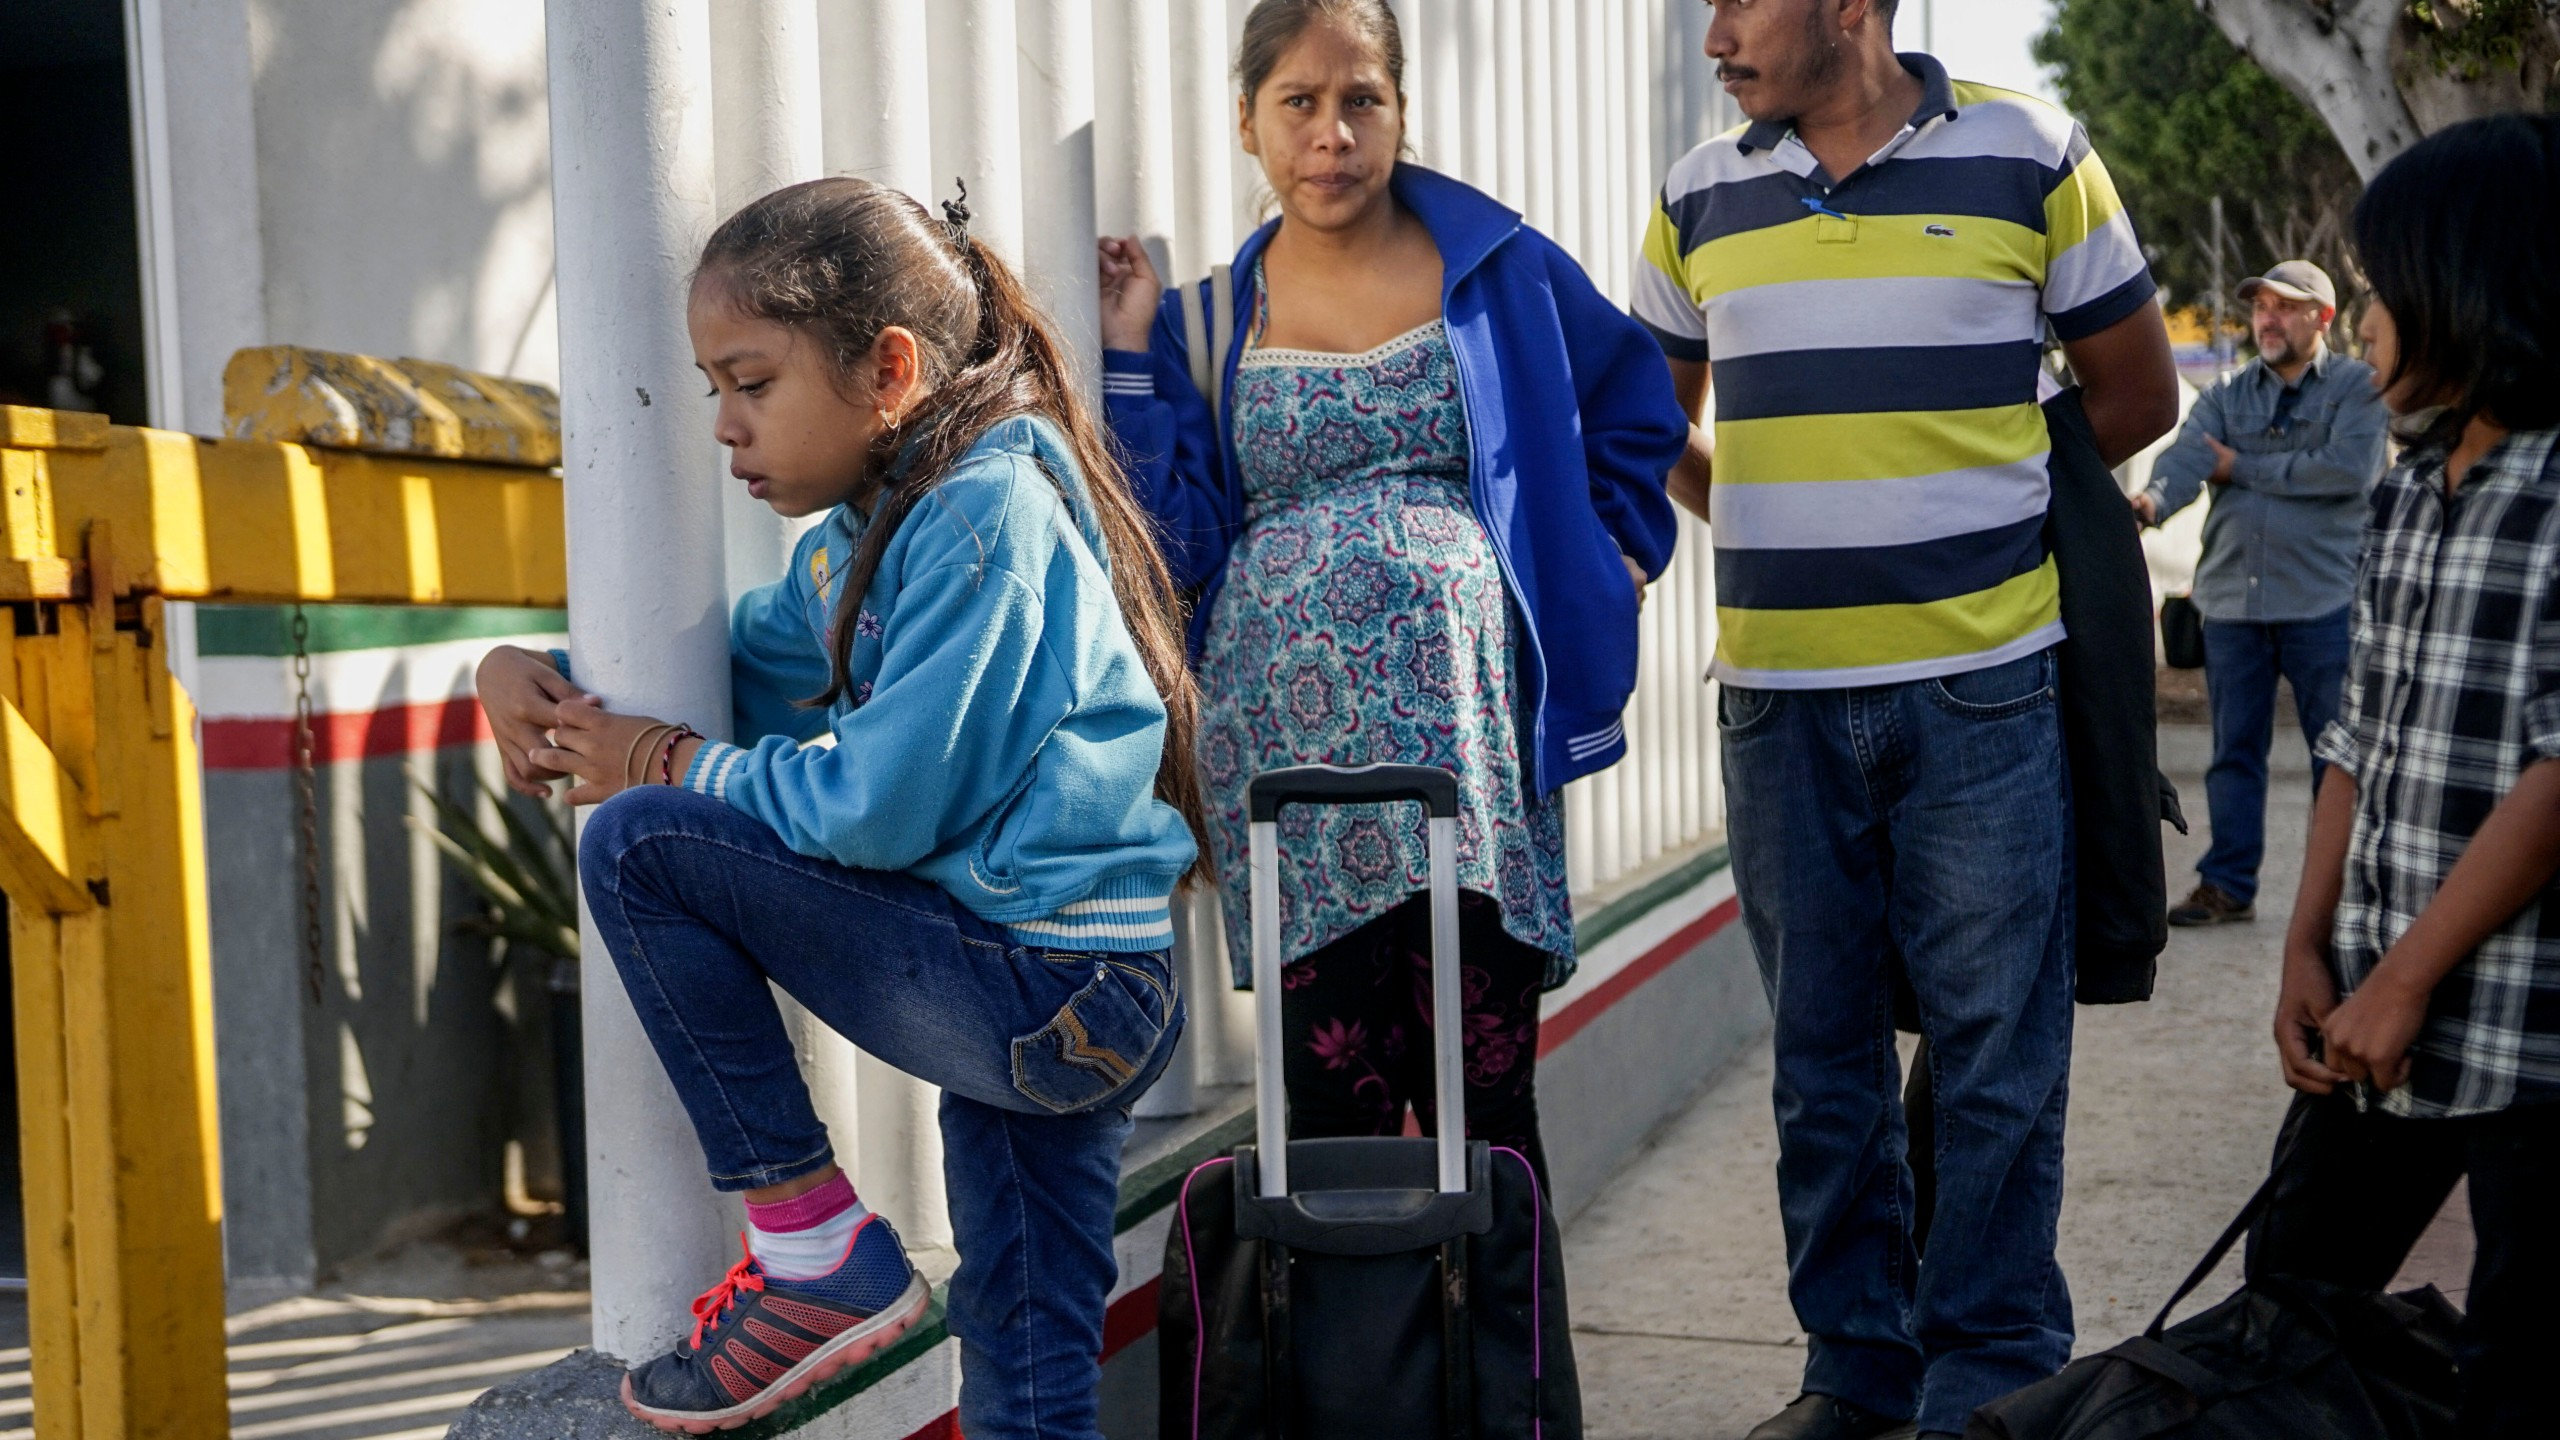 Migrants from Honduras wait in line at the Mexico-U.S. border crossing in Tijuana, Mexico on Sept. 12, 2019. (Credit: SANDY HUFFAKER/AFP/Getty Images)